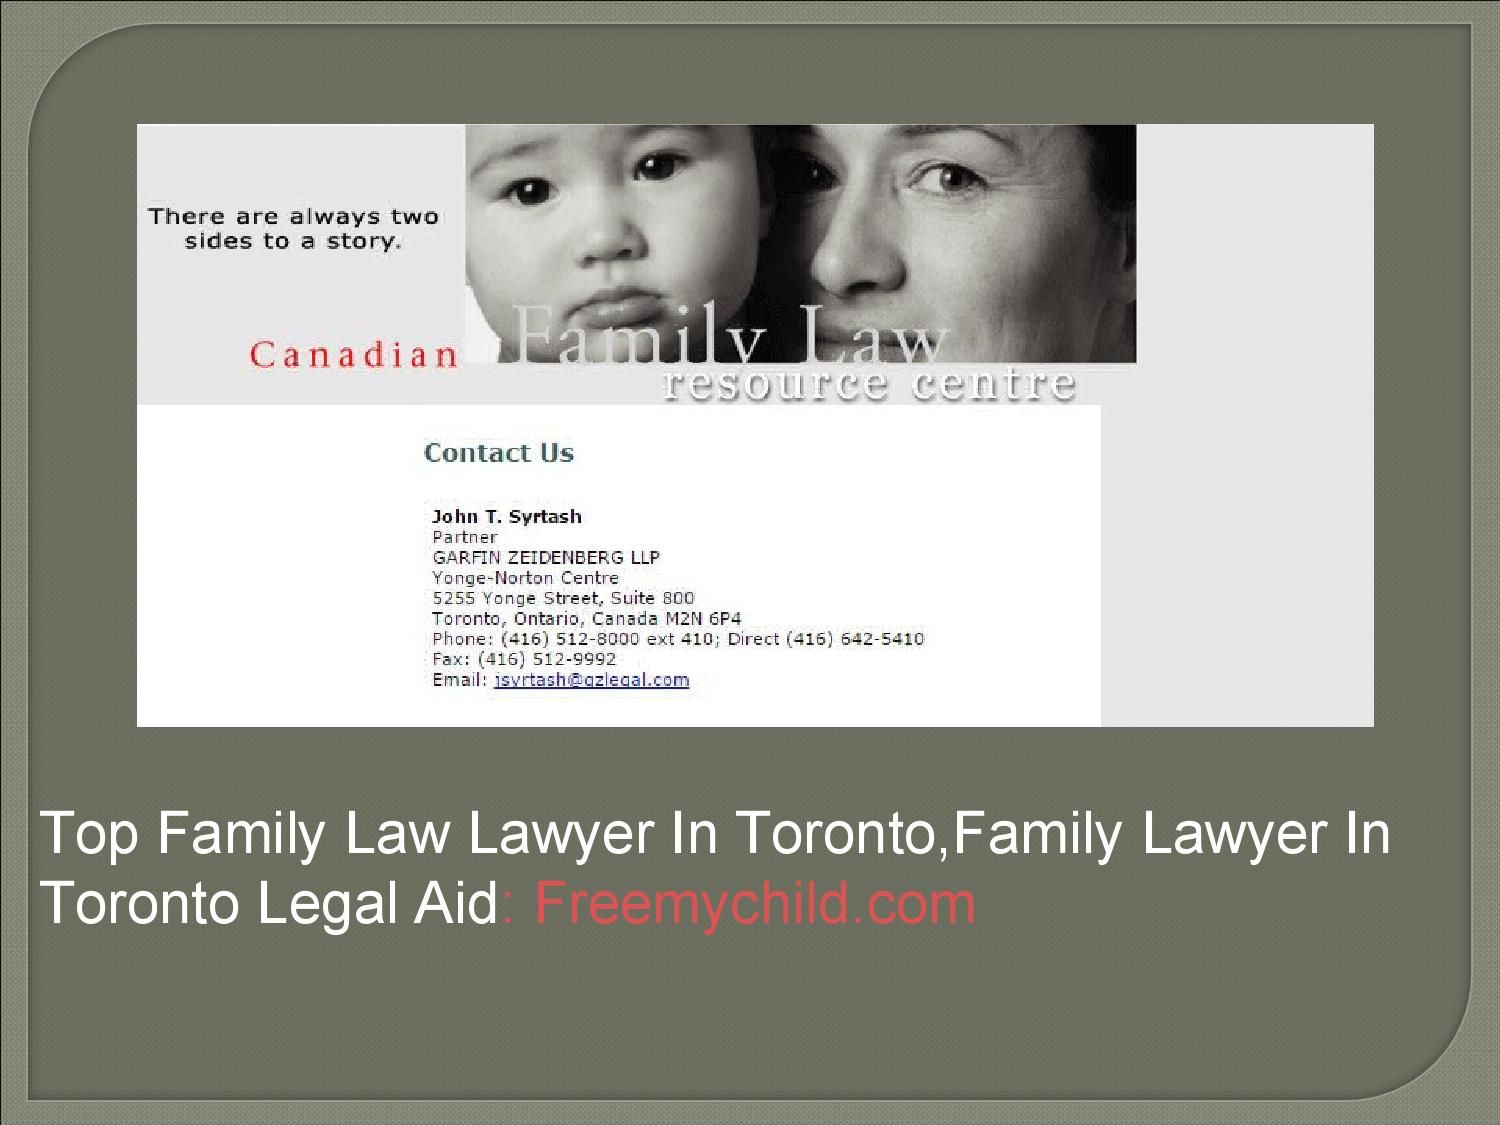 Top Family Law Lawyer In Toronto,Family Lawyer In Toronto